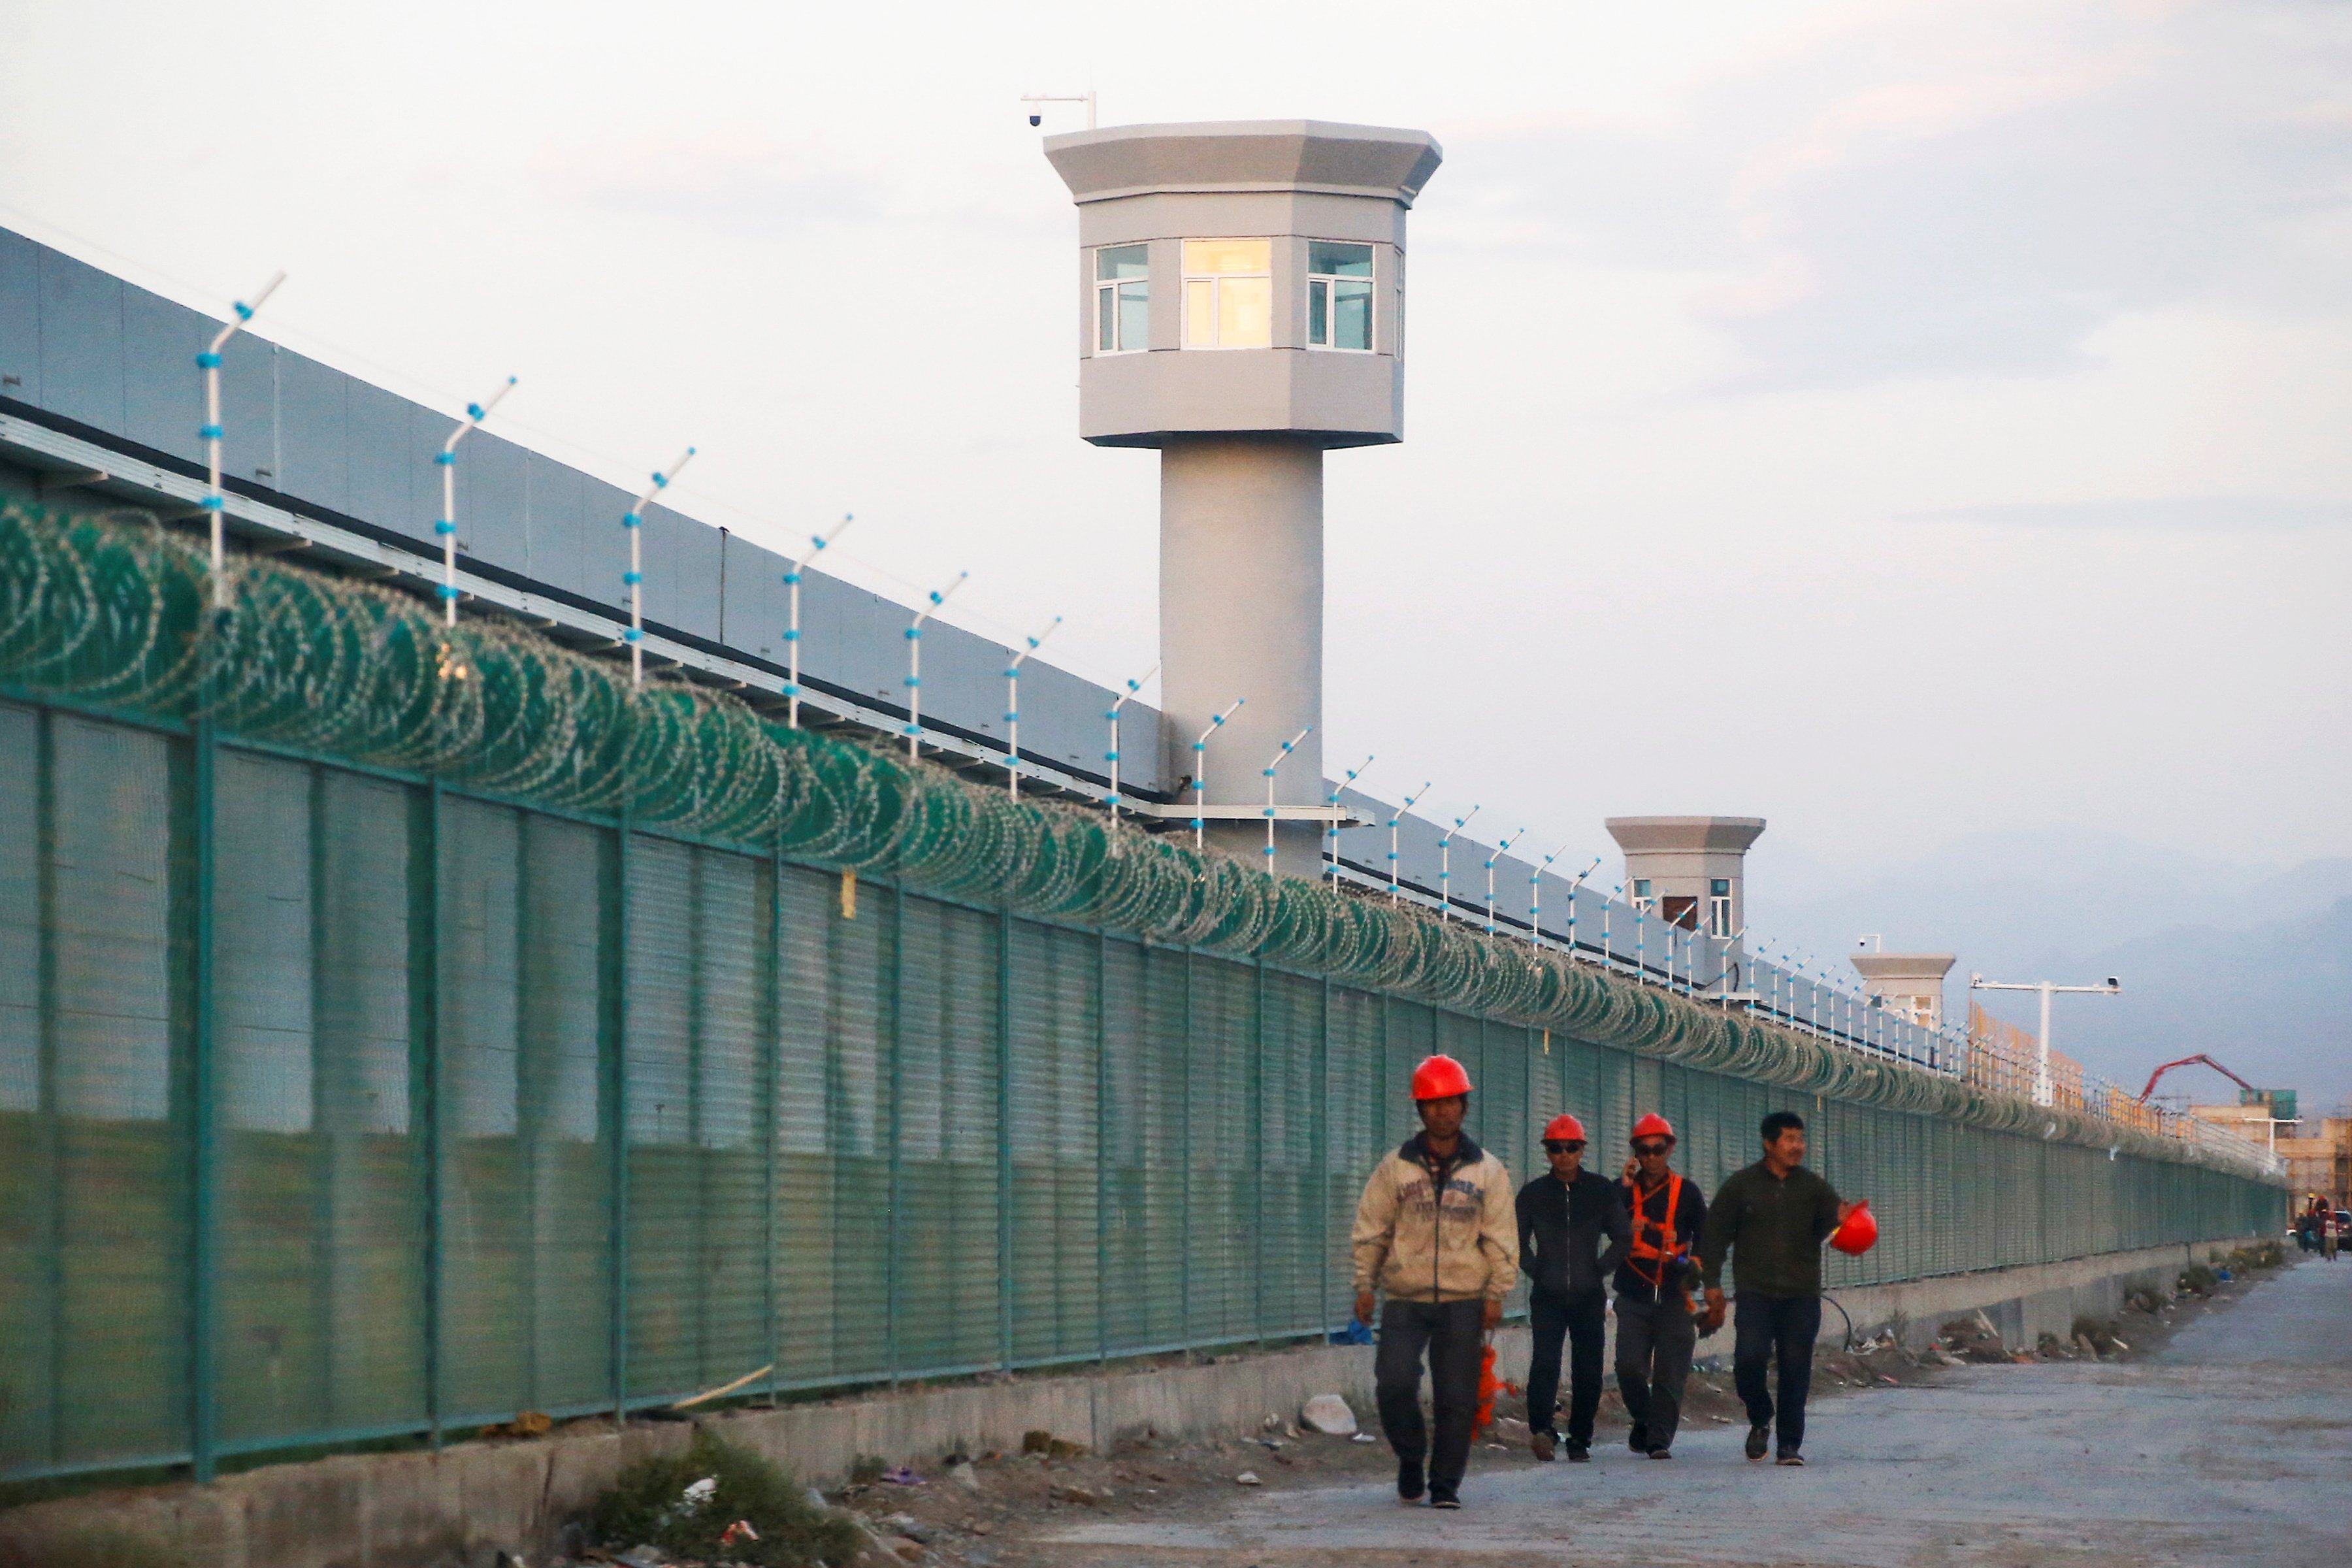 Workers walk by the perimeter fence of what is officially known as a vocational skills education centre in Dabancheng in Xinjiang Uighur Autonomous Region, China September 4, 2018. REUTERS/Thomas Peter